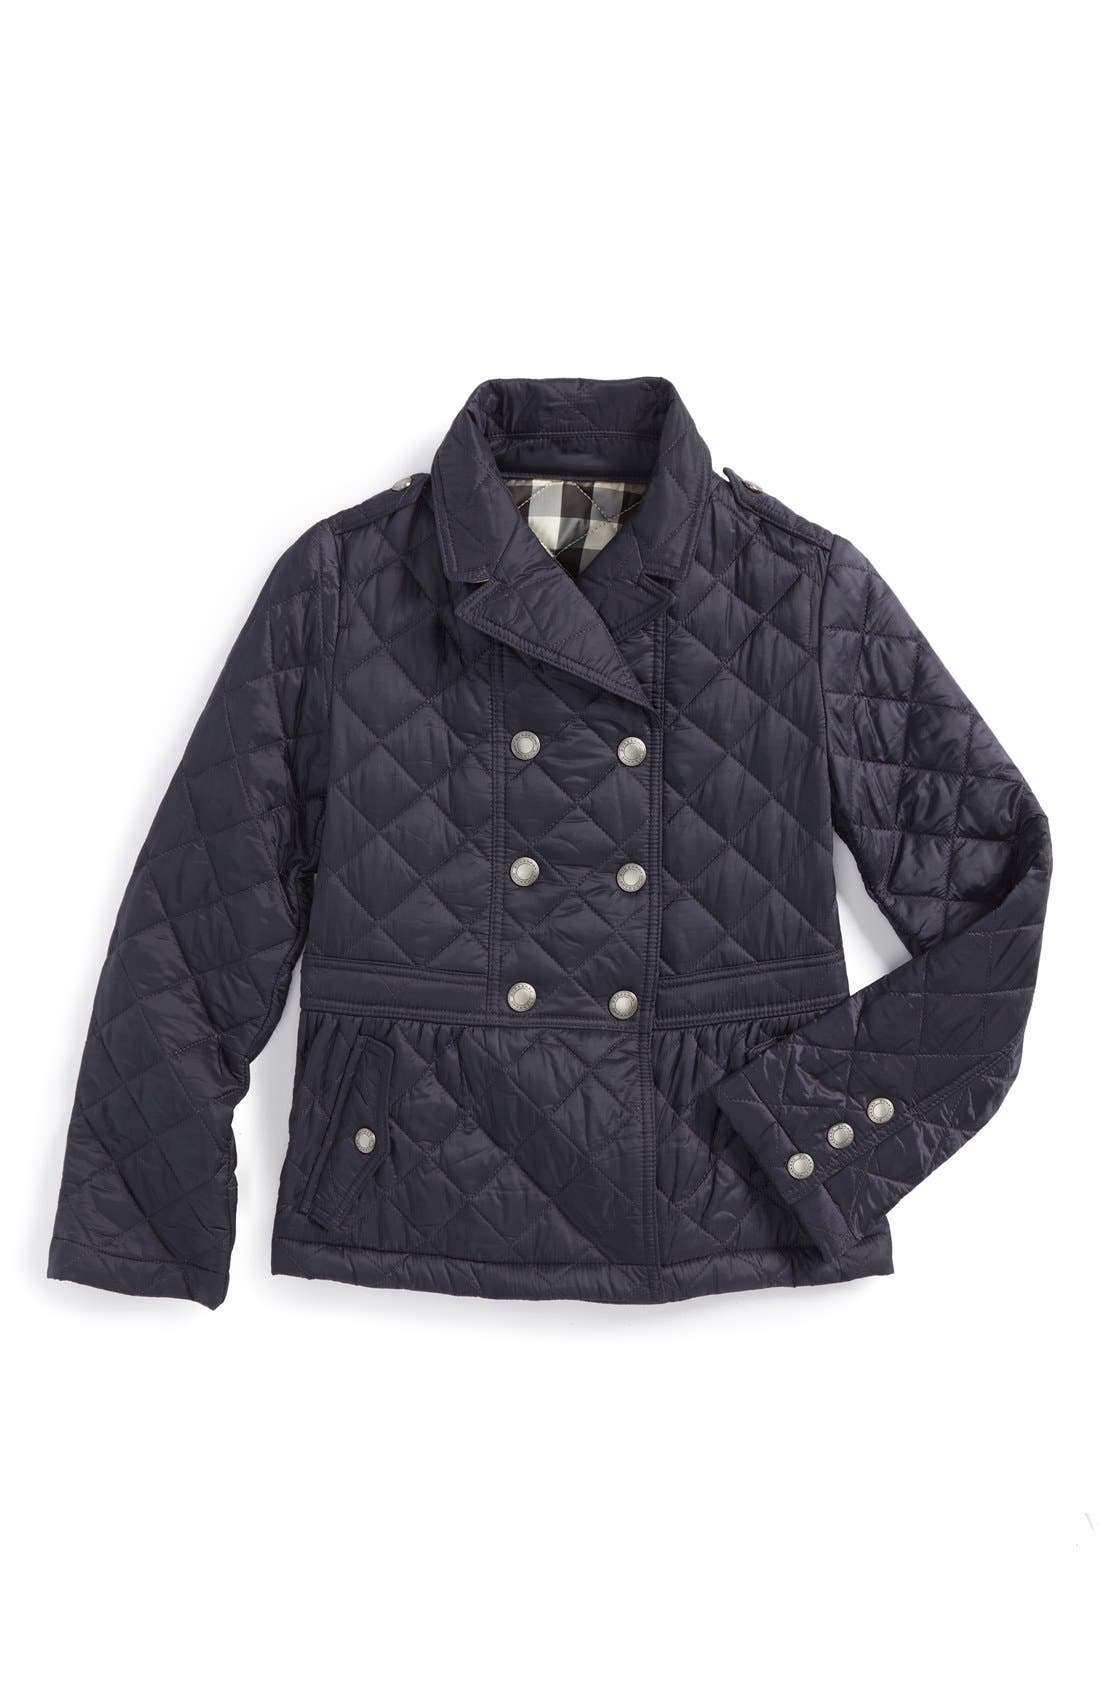 Main Image - Burberry 'Portree' Quilted Jacket (Little Girls)